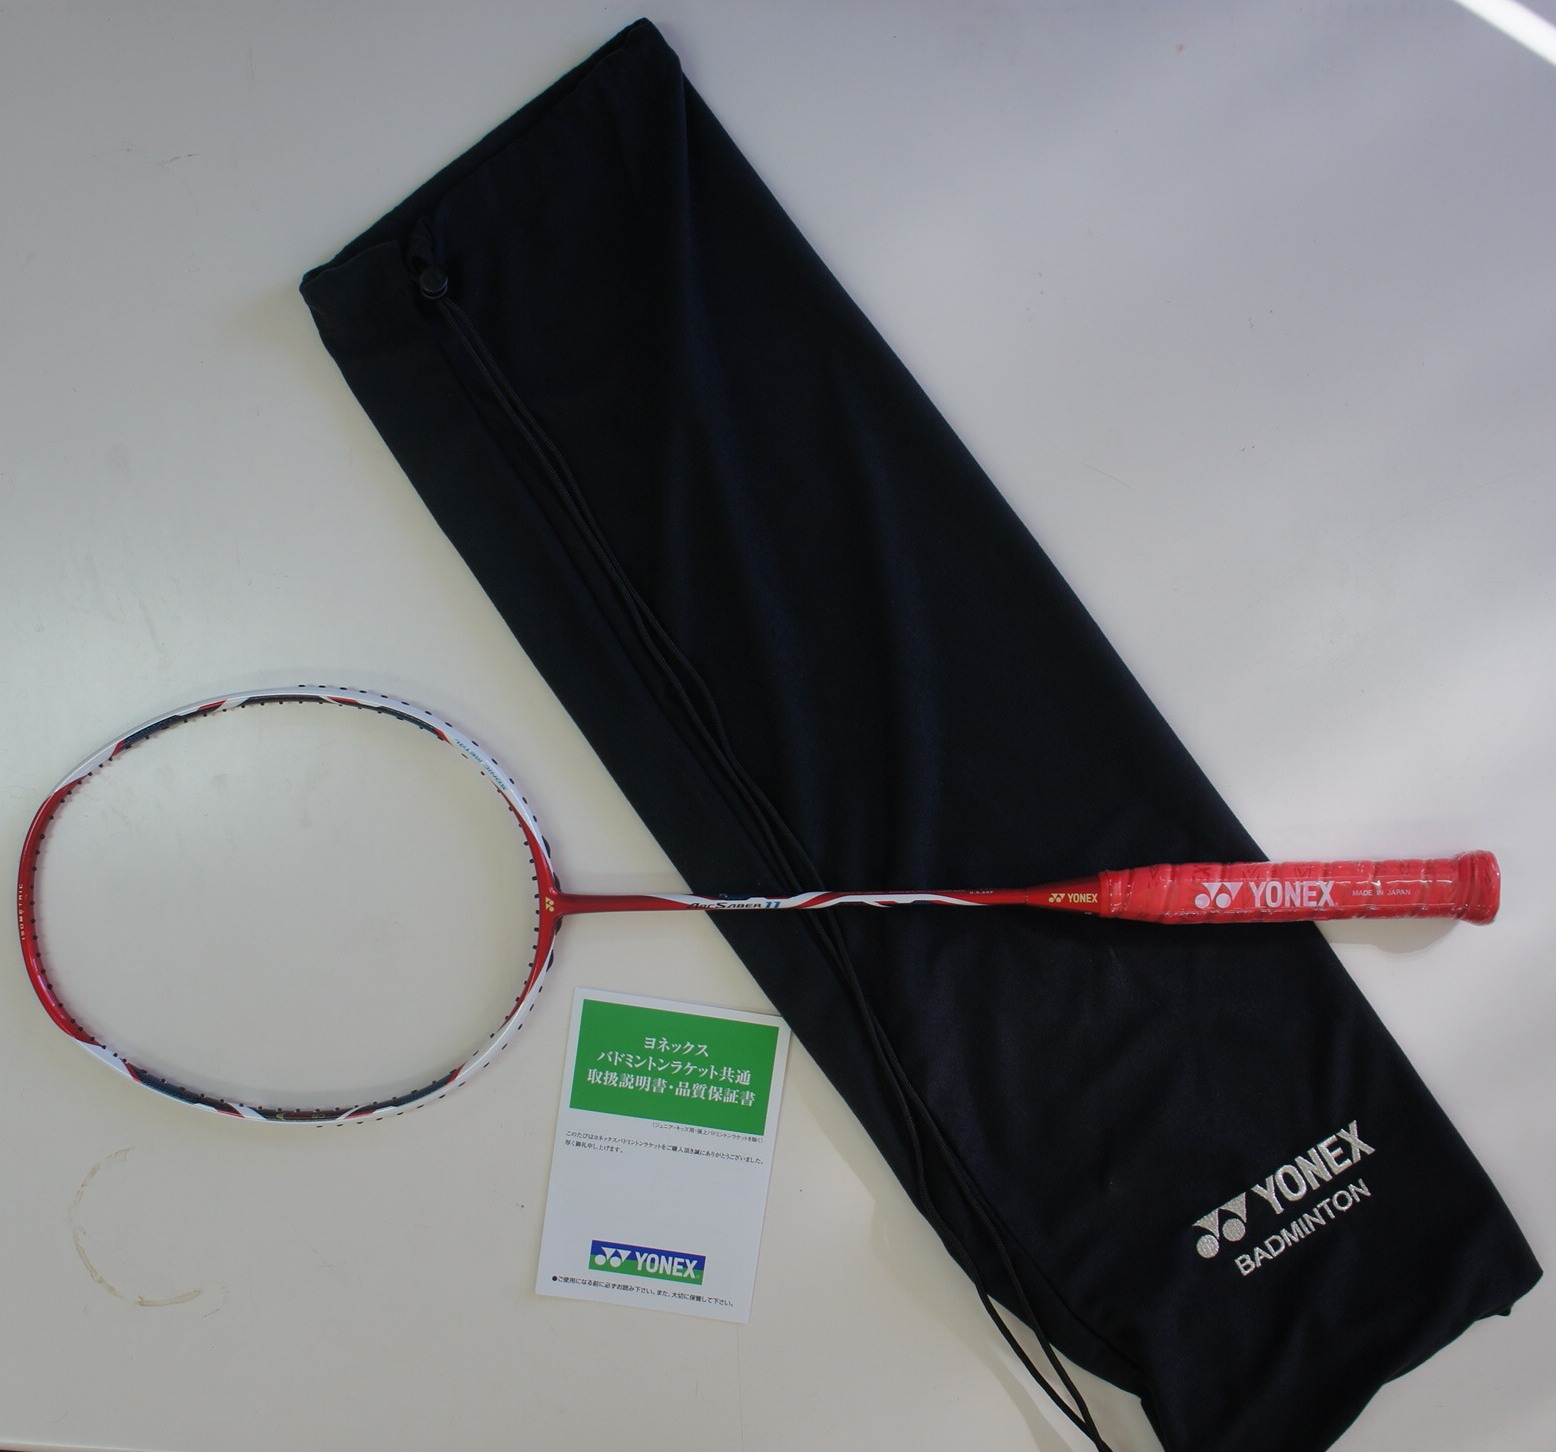 JAPAN Version Yonex Arc Saber 11 Racquet (Unstrung), New Colour